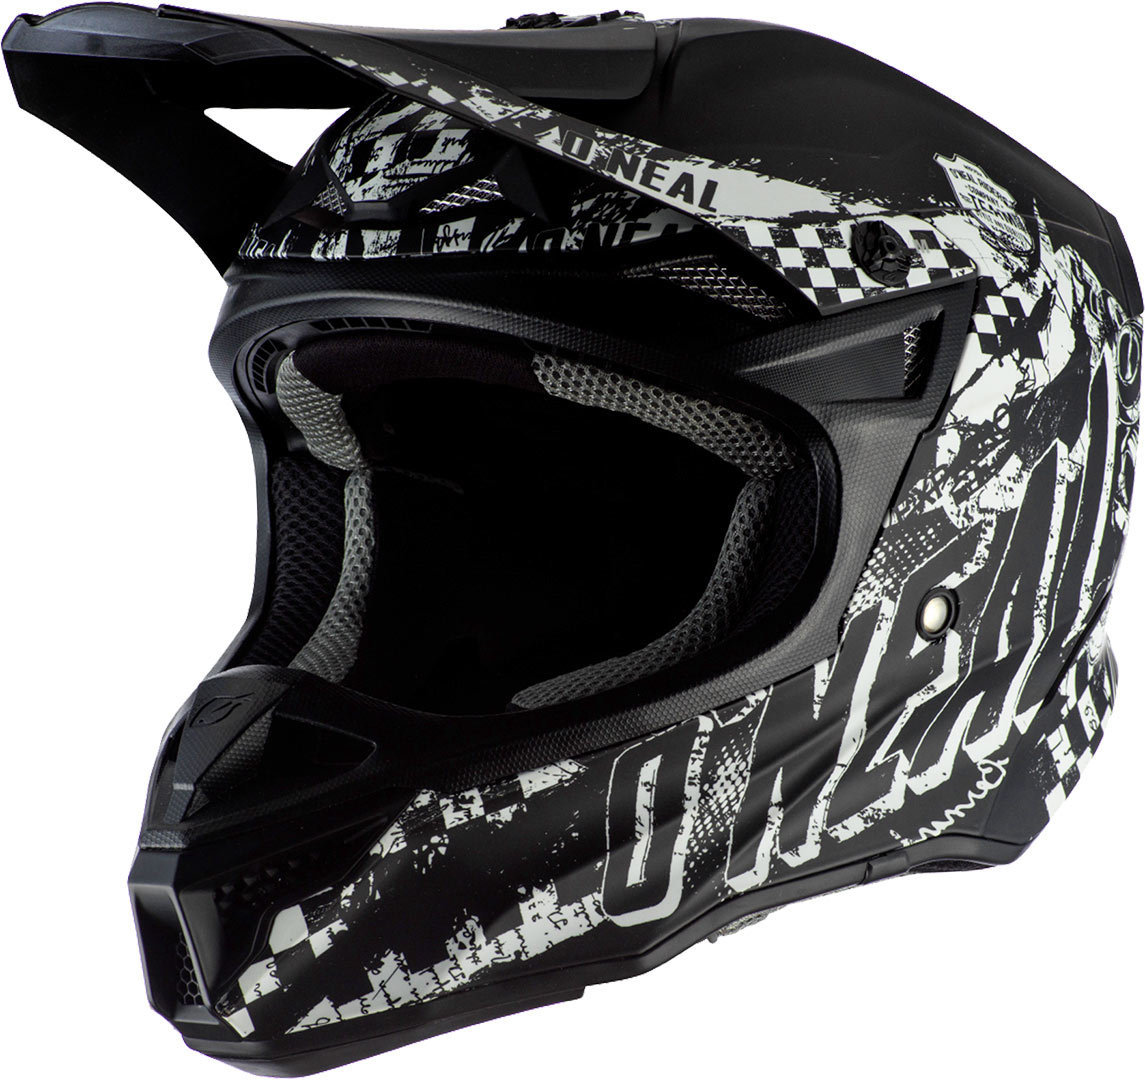 Oneal 5Series Polyacrylite Rider Motocross Helm, schwarz-weiss, Größe 2XL, schwarz-weiss, Größe 2XL